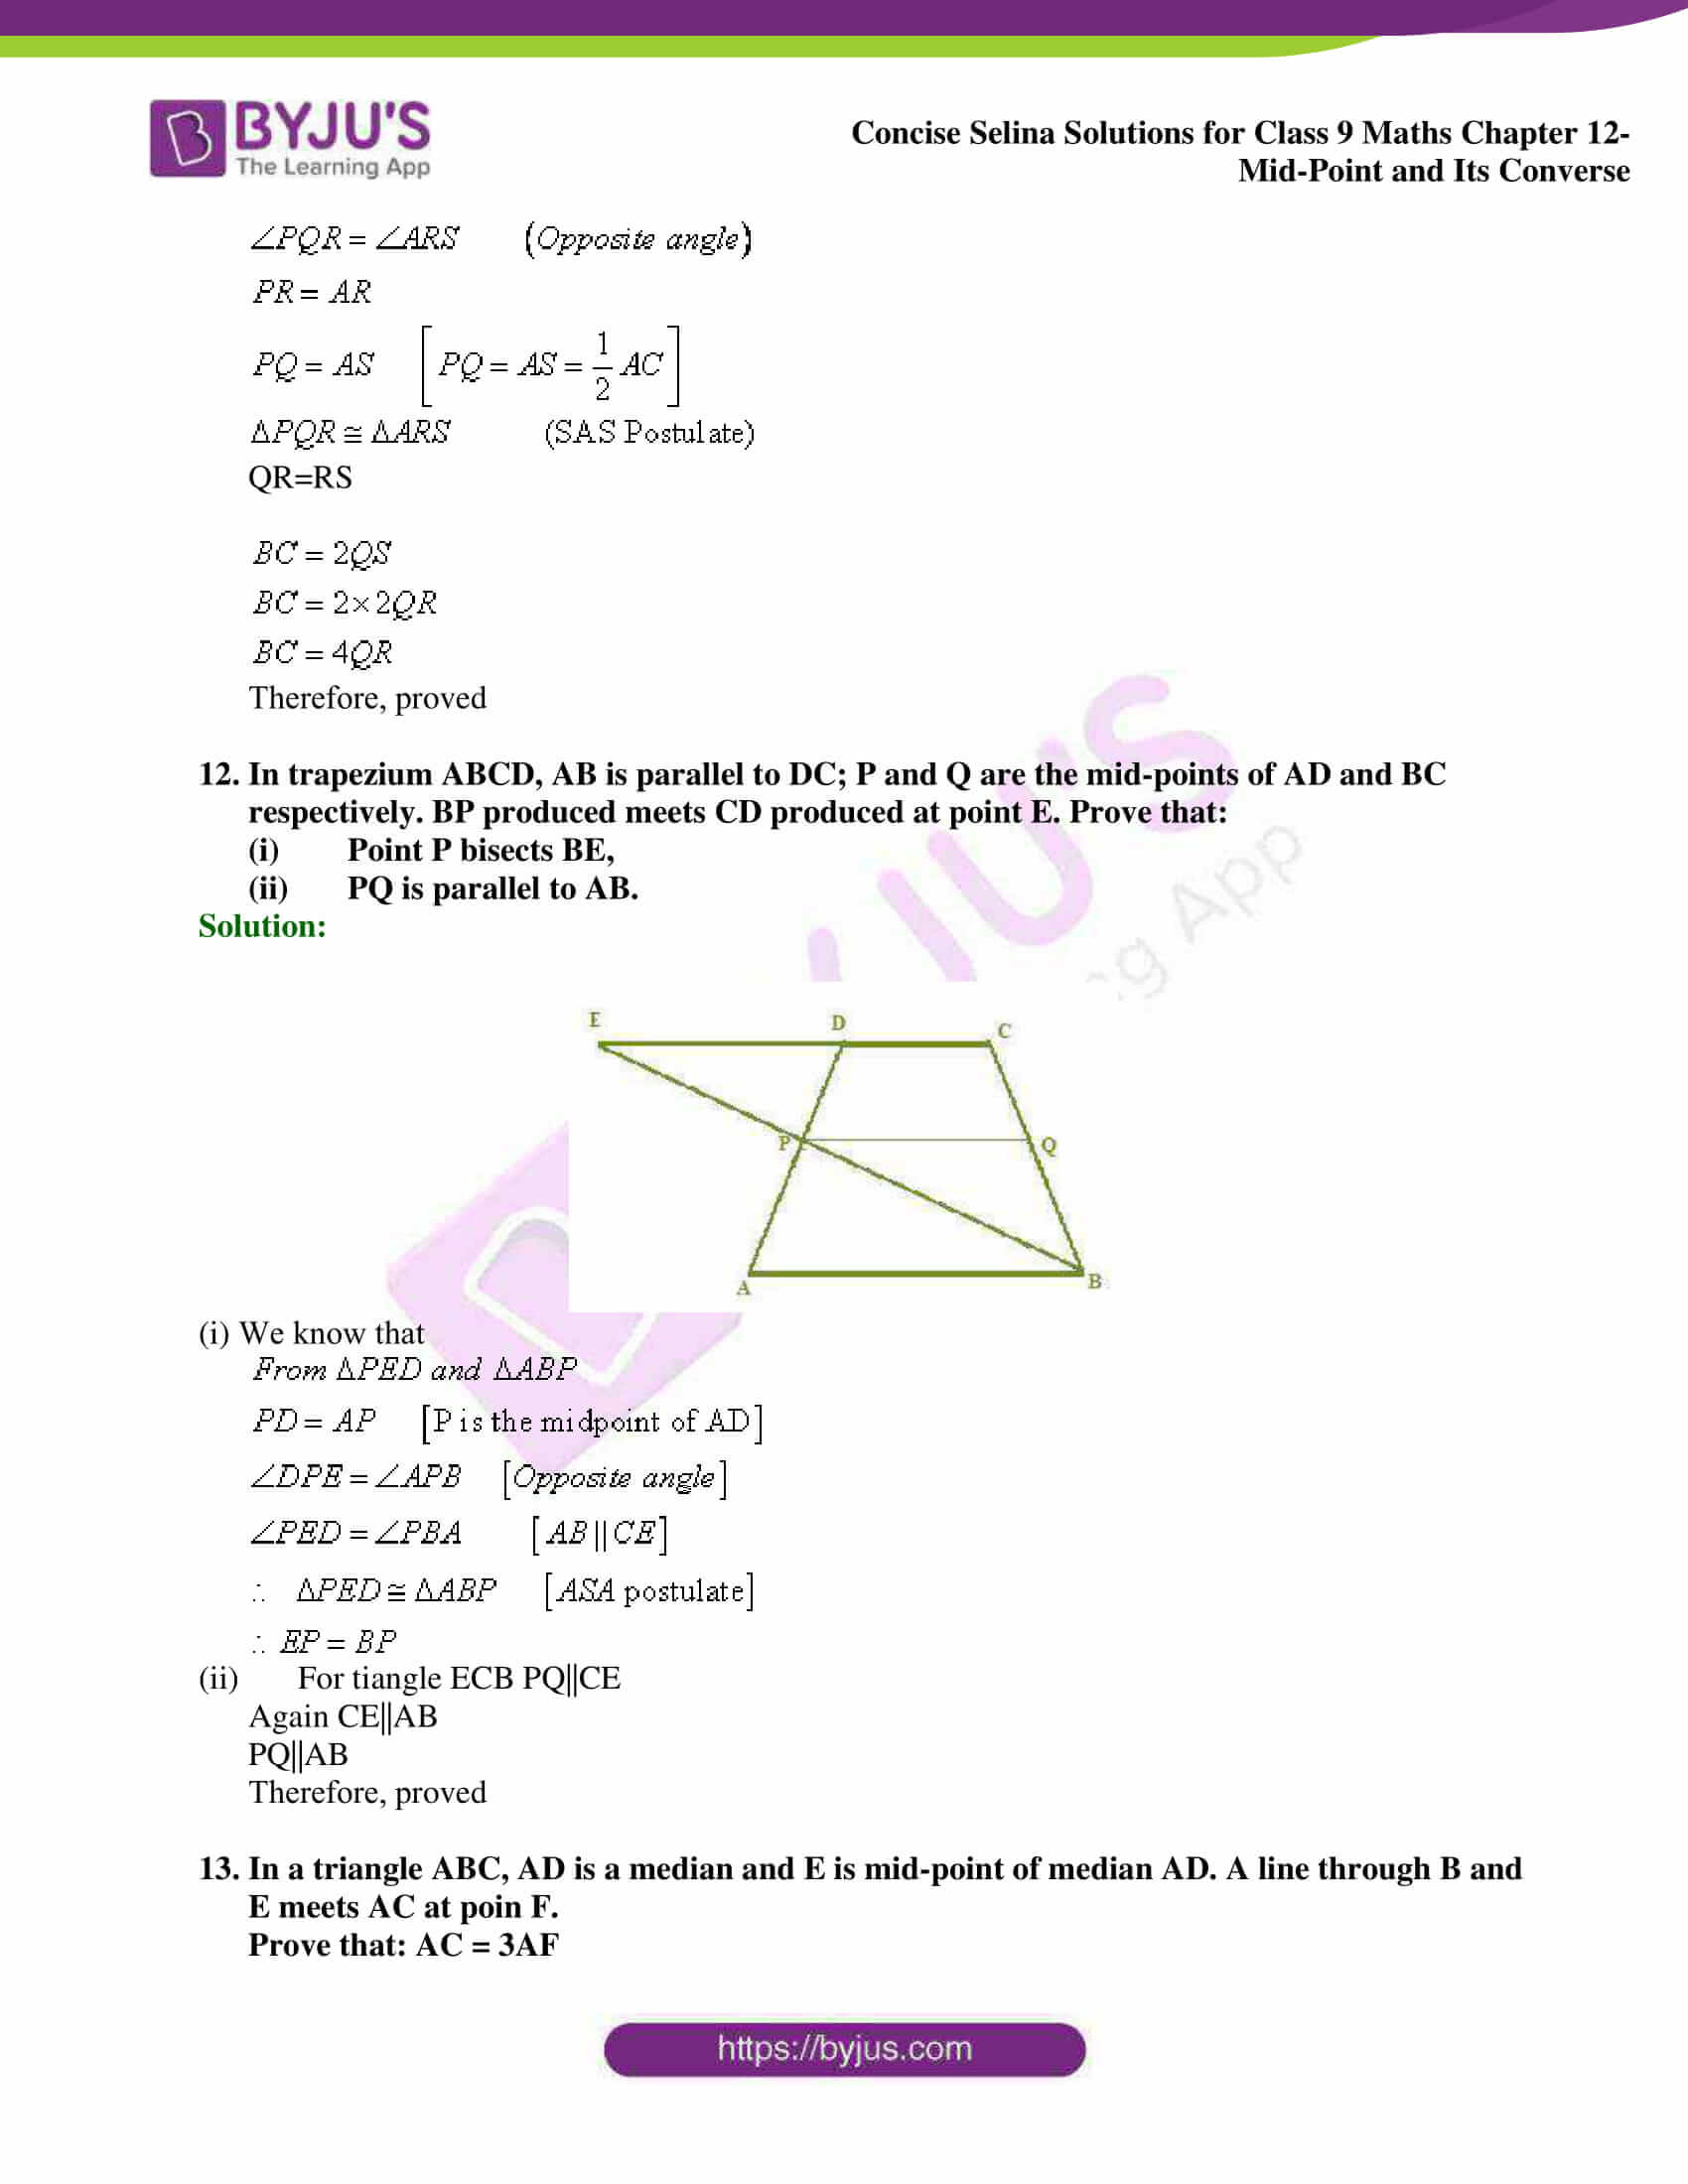 selina Solutions for Class 9 Maths Chapter 12 08